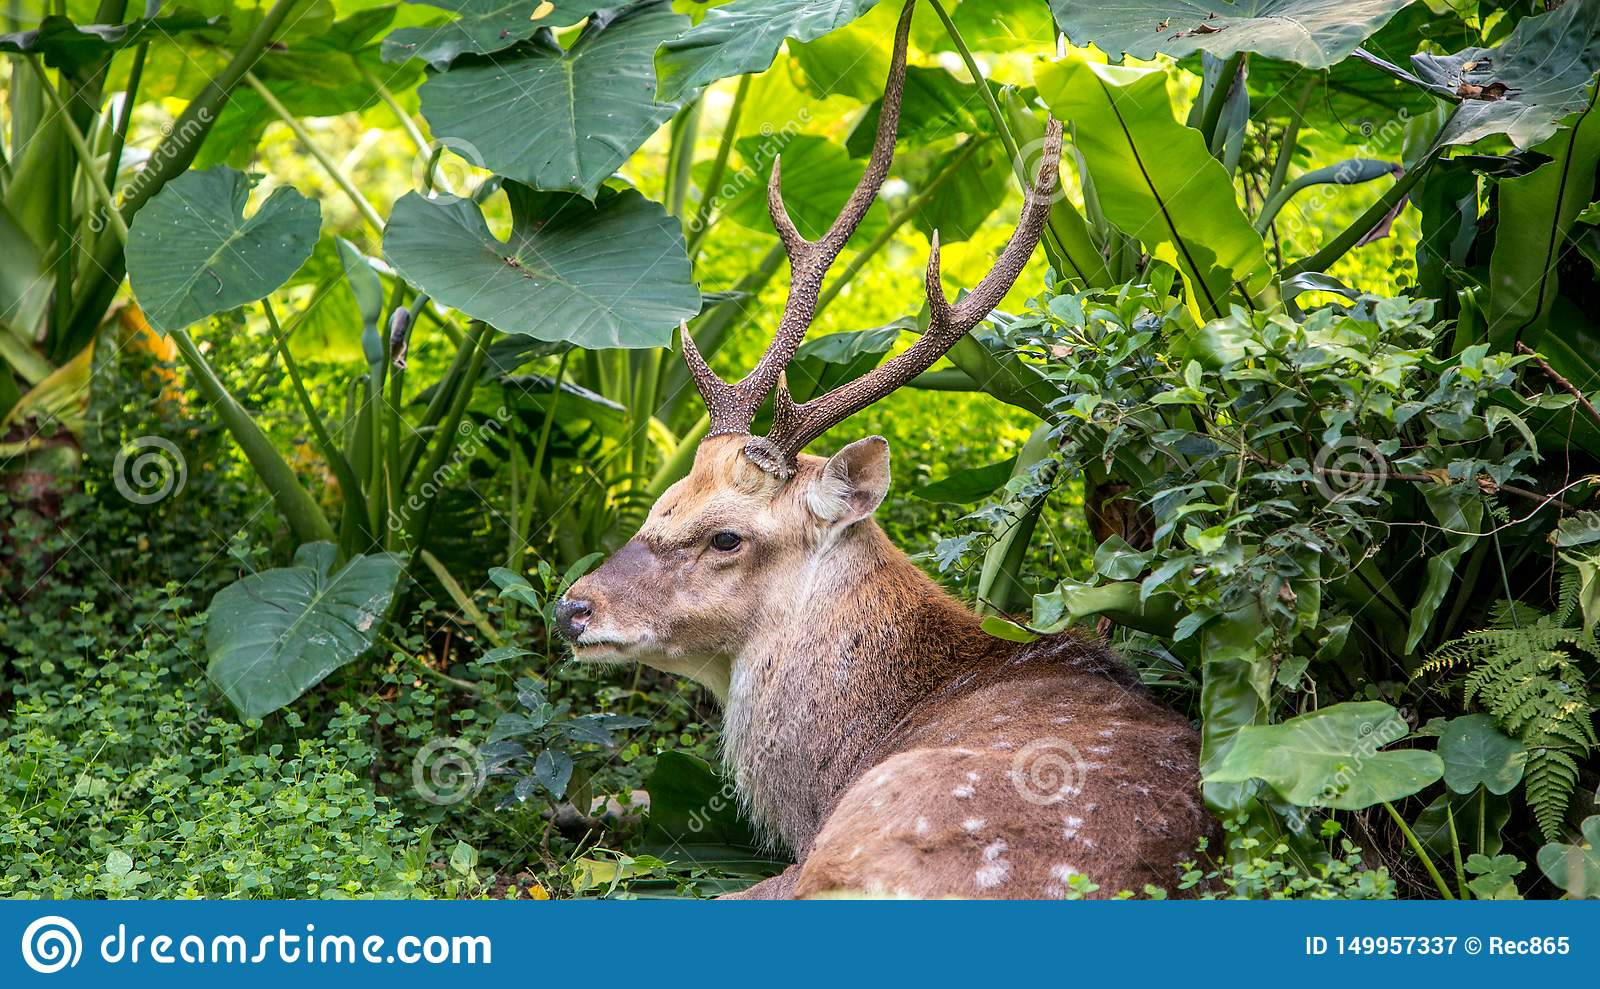 A cervus nippon, Sika Deer, resting lying among the trees and forest plants